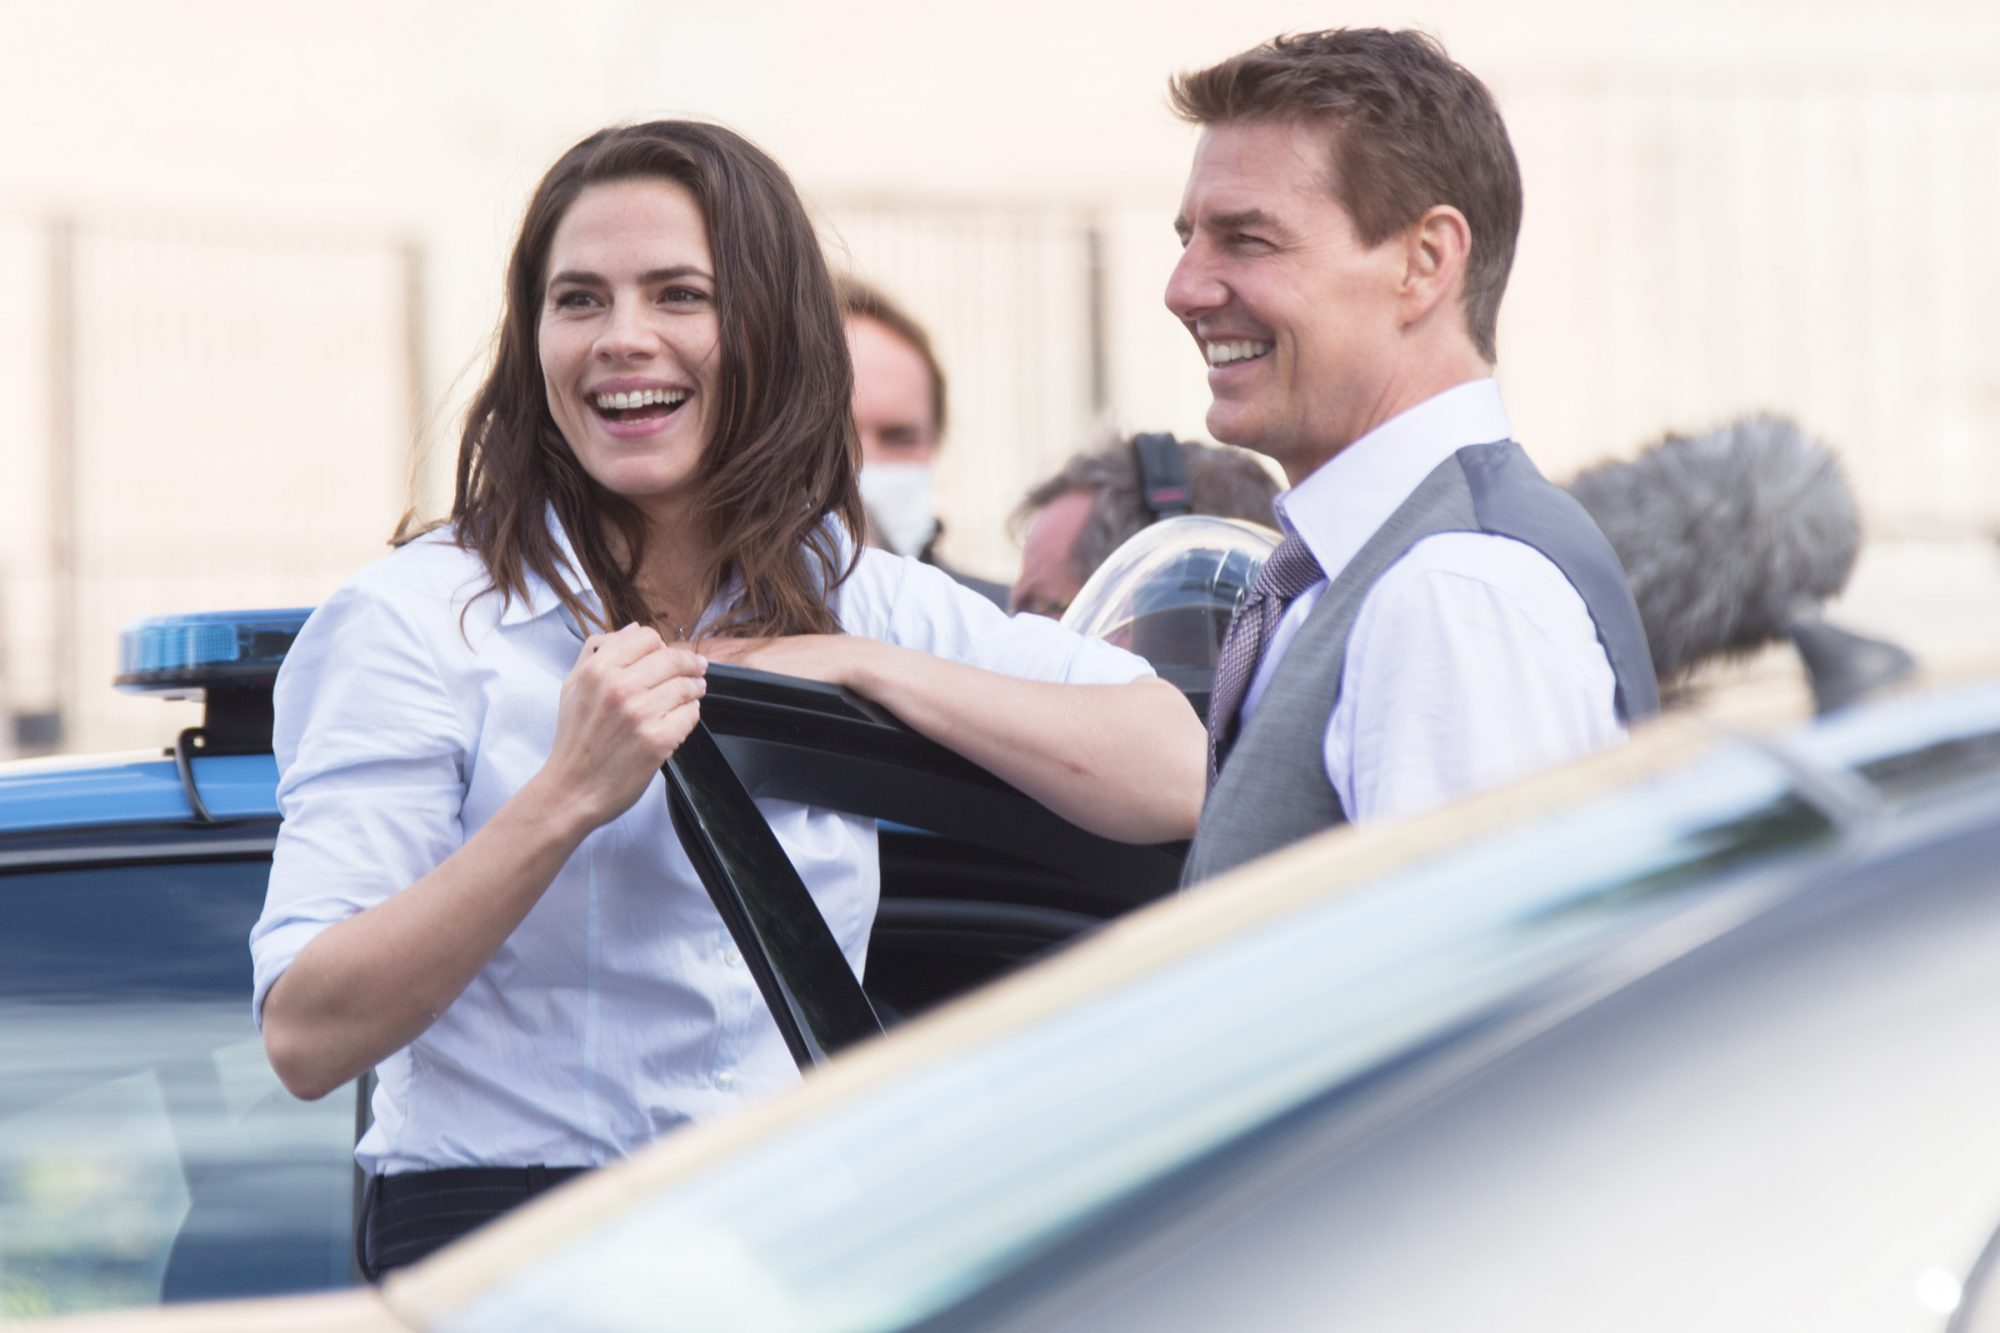 Tom Cruise and Hayley Atwell on the set of the movie ''Mission Impossible 7'' in Via dei Fori Imperiali in Rome, on the morning of 12 October 2020